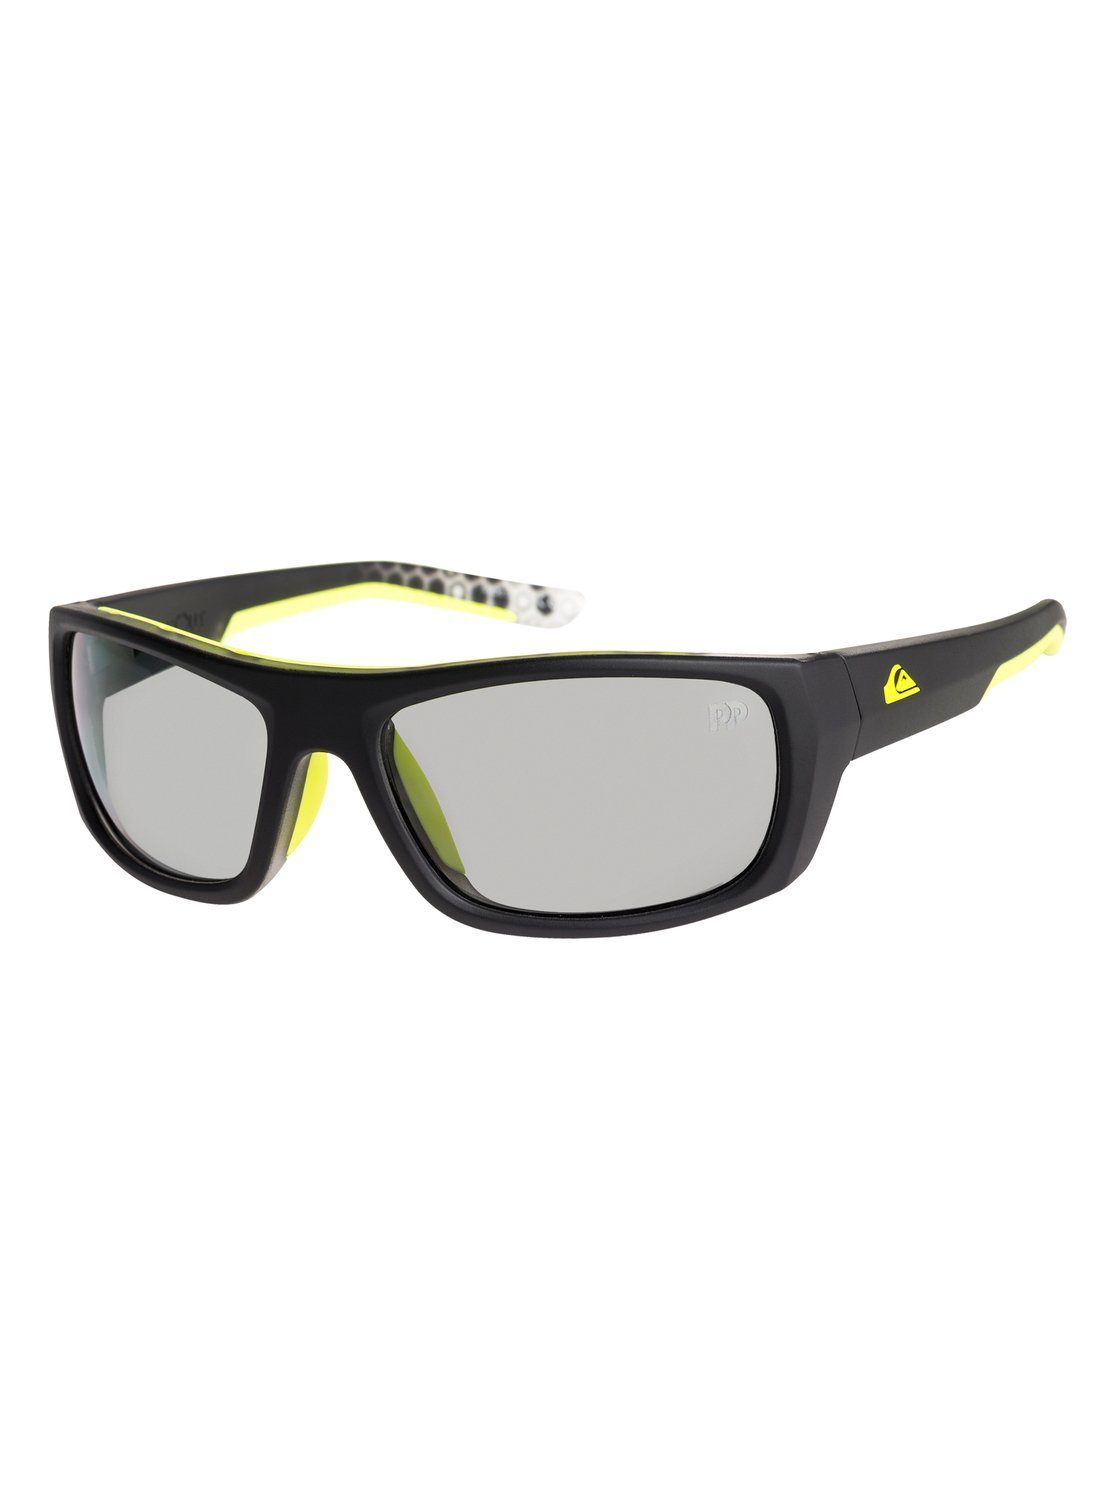 Quiksilver Sonnenbrille »Hideout Polarised Floatable«, bunt, black/ green